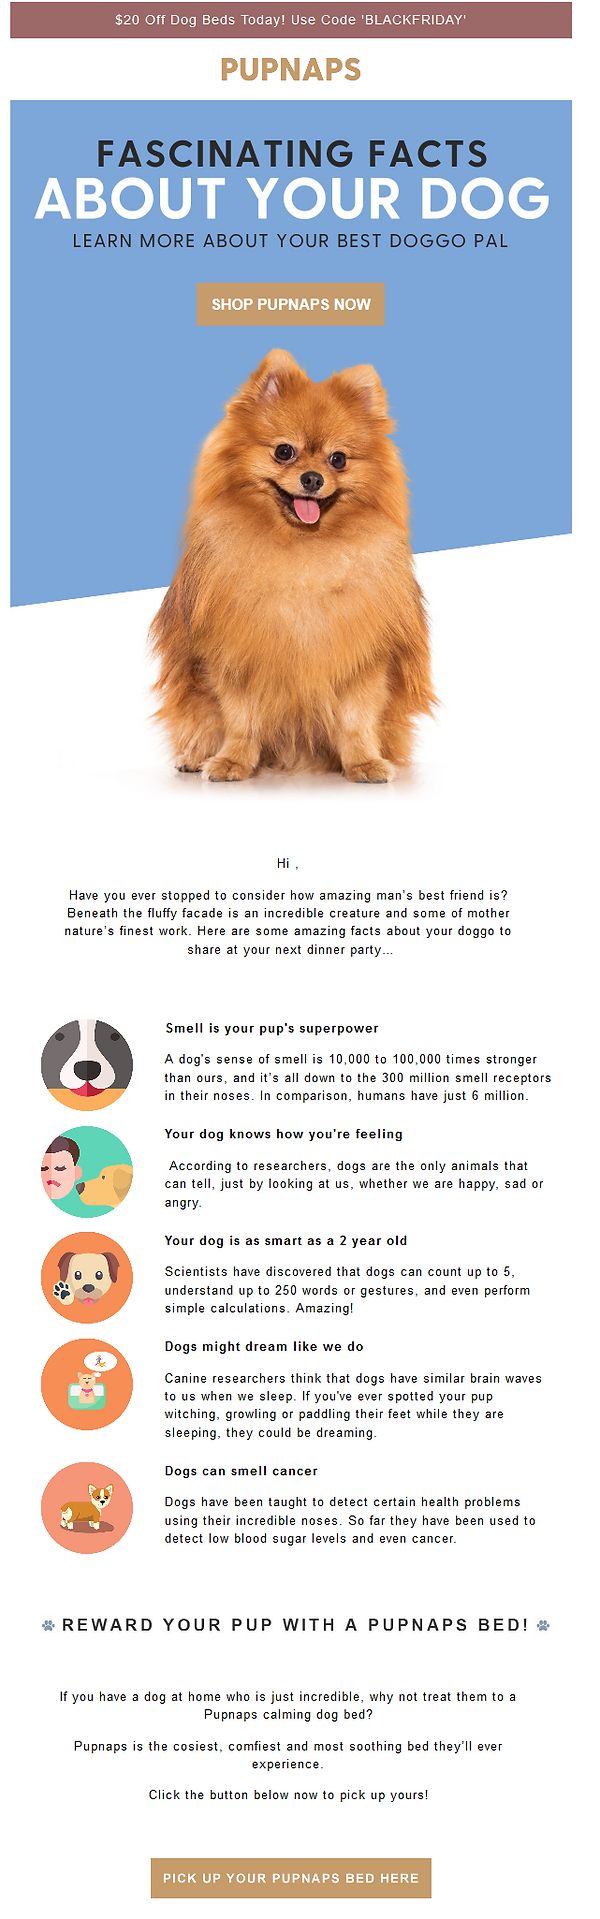 Dog bed email copywriting.png